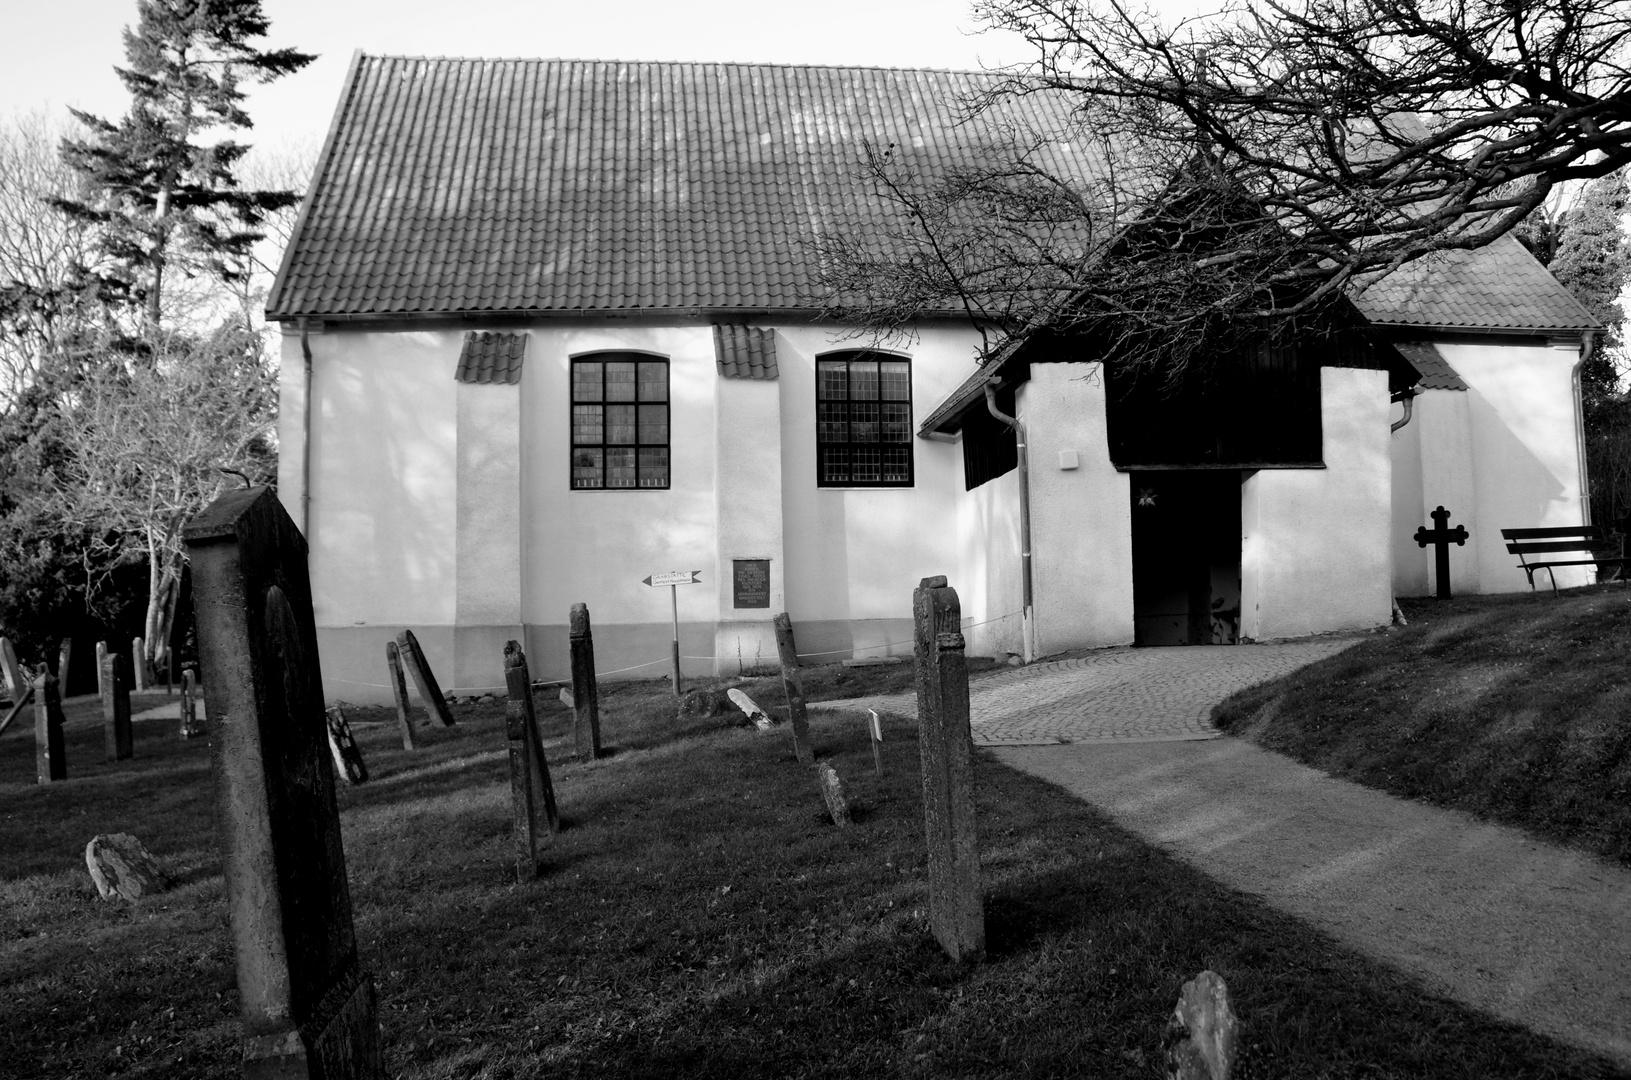 Inselkirche Kloster Insel Hiddensee